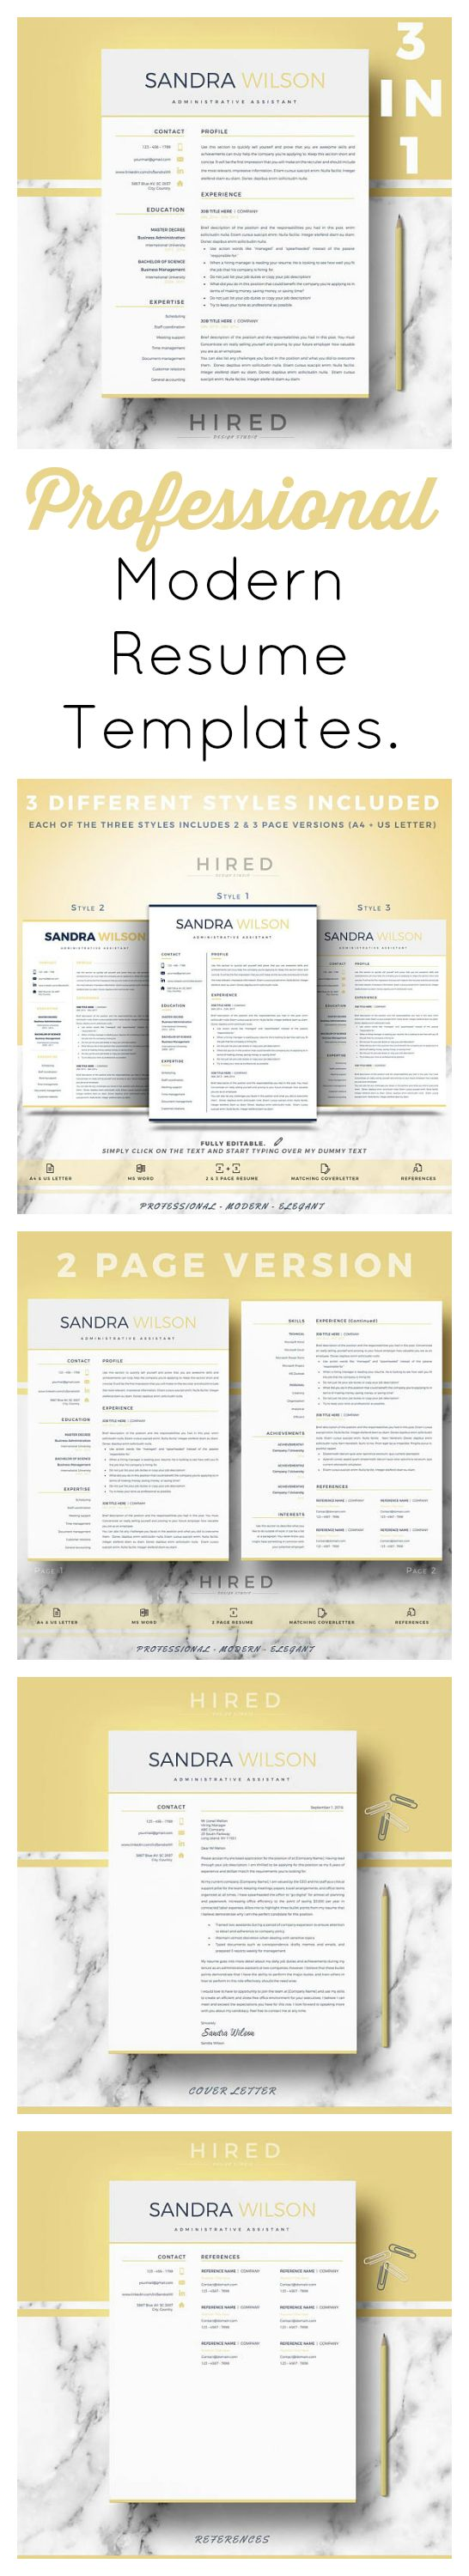 Delightful Canu0027t Decide Which Version I Like The Most!! Bonus   Thereu0027s A RESUME  WRITING GUIDE Where You Can Find Lots Of Tips And Examples To Write Your  Best Resume.